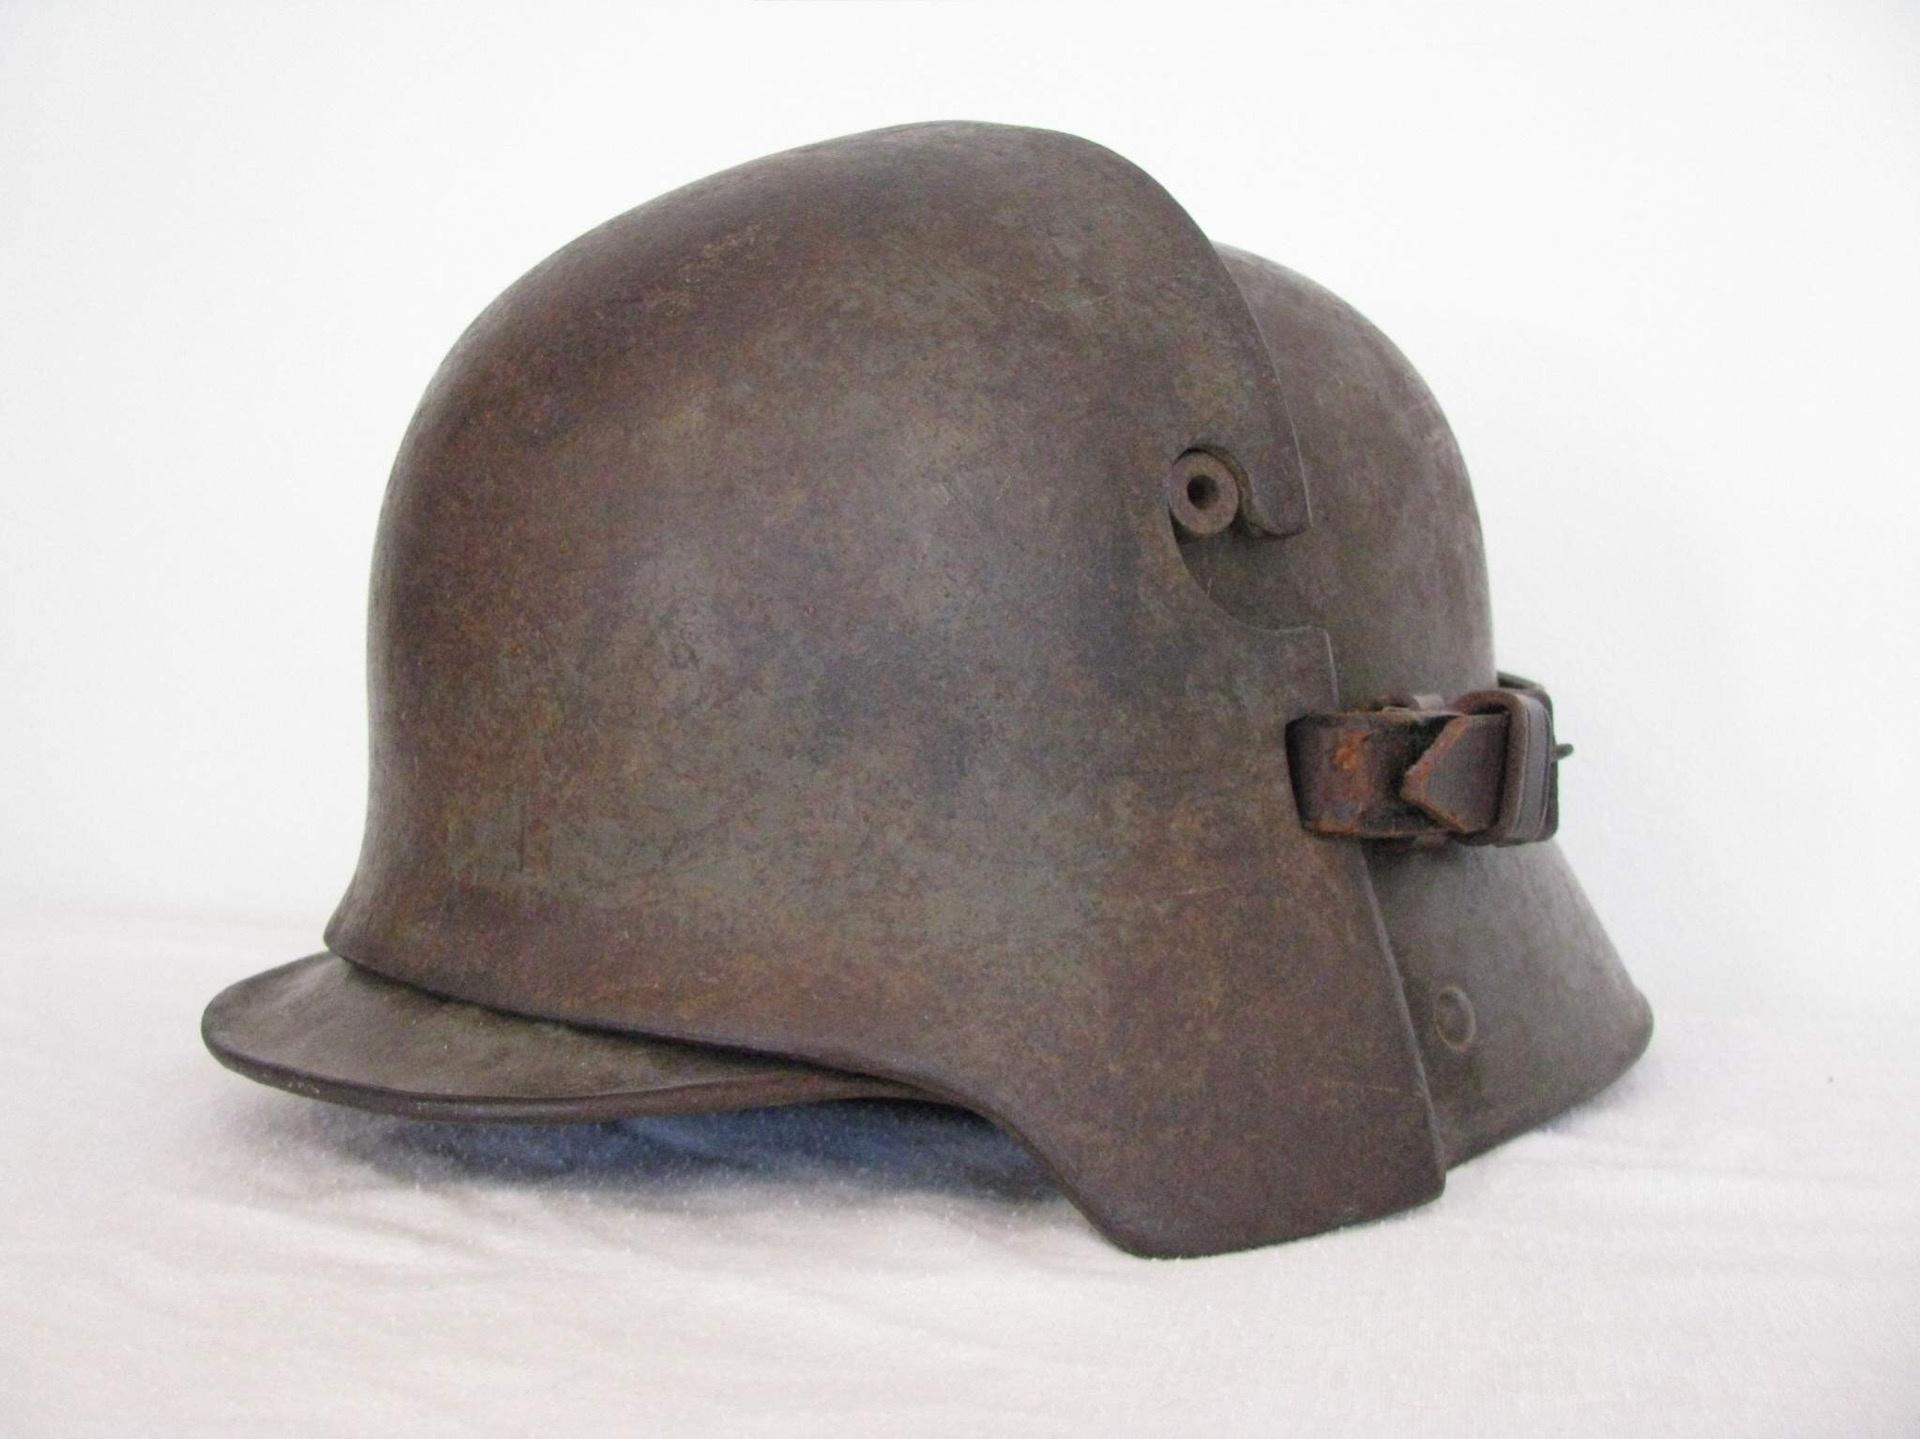 How much is a genuine Stahlhelm worth? - Quora